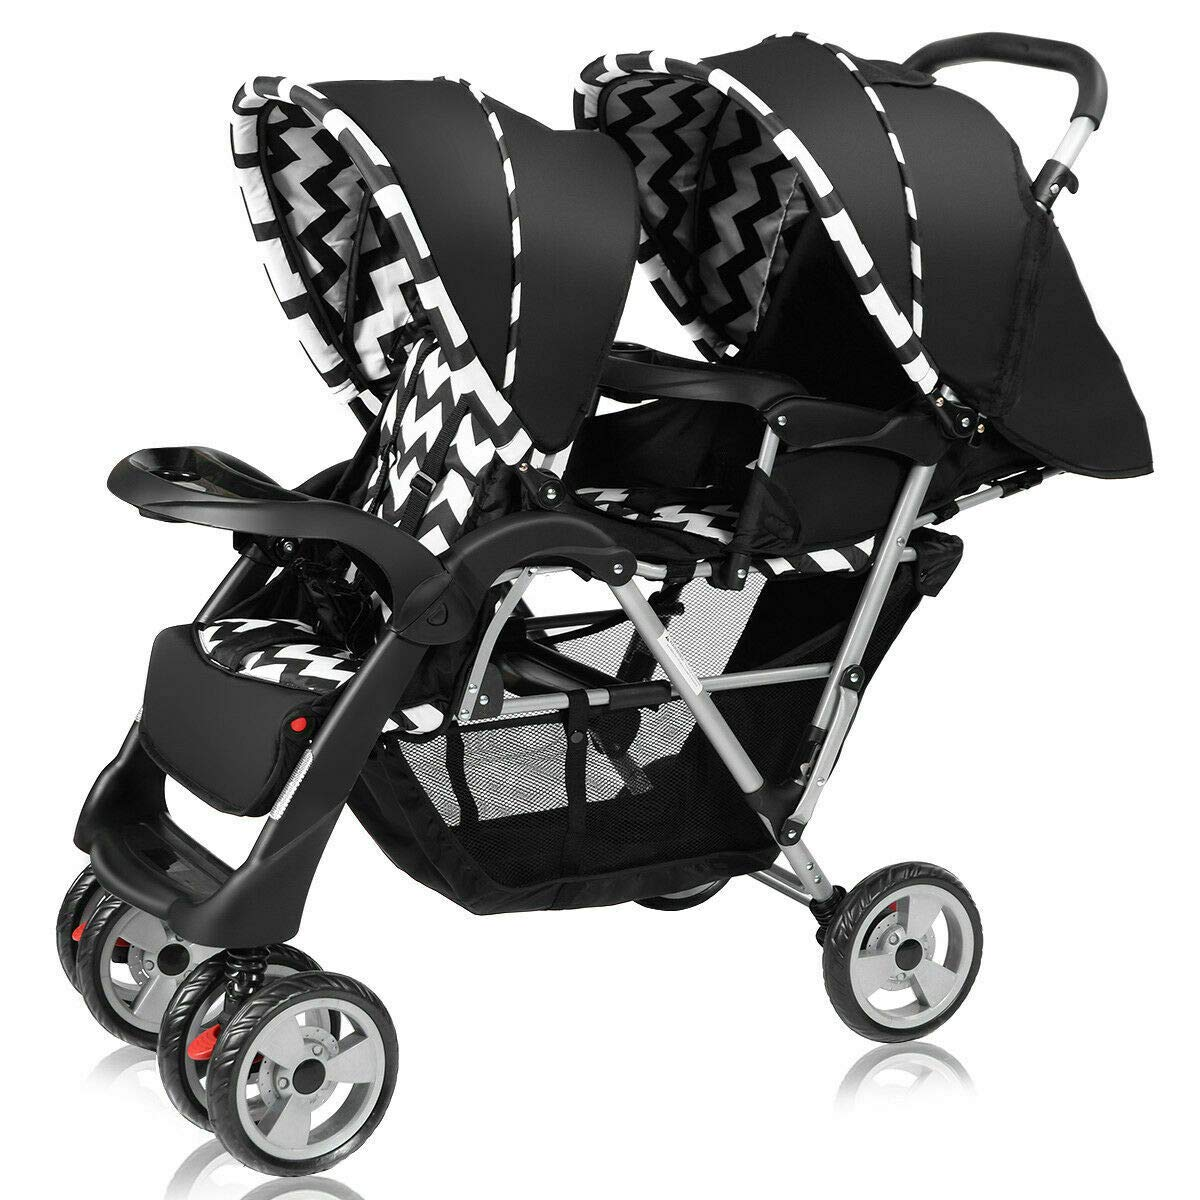 Cozinest Foldable Twin Baby Double Stroller Kids Jogger Travel Infant Pushchair Black